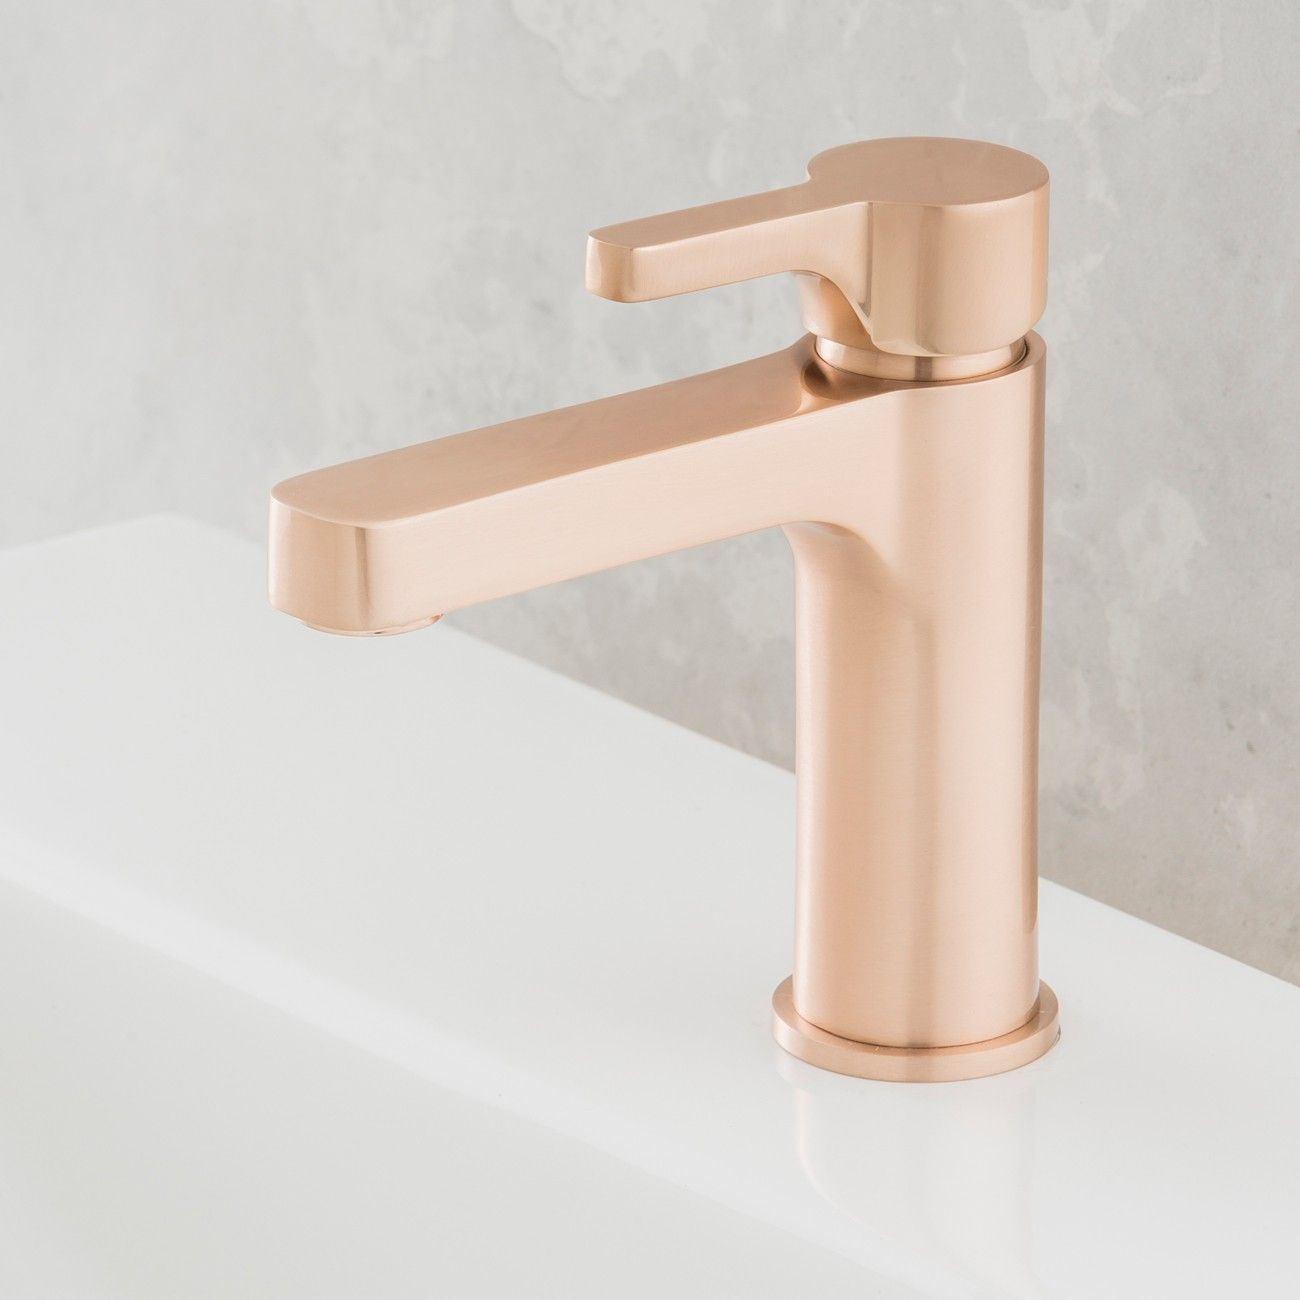 rogerseller arq basin mixer rose copper rogerseller copper the elegant arq basin mixer by rogerseller is a fusion between soft radius and clean lines a simple and understated design suitable for all bathroom